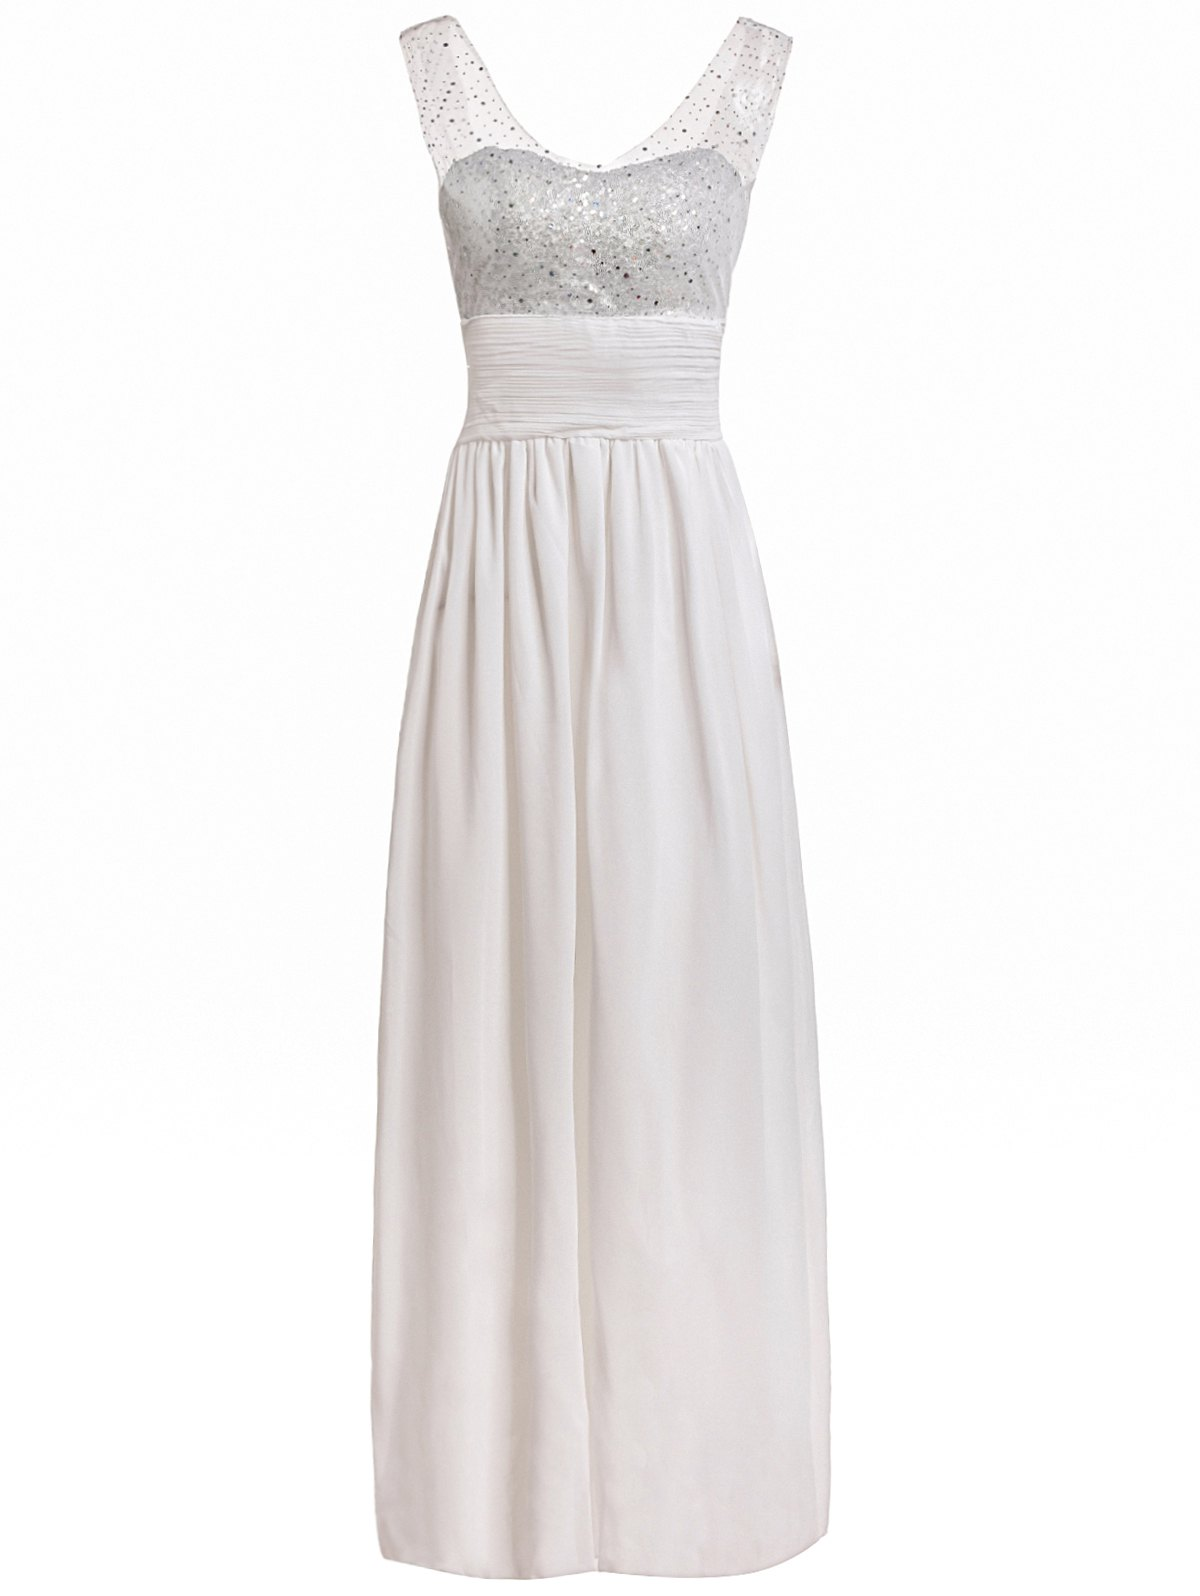 Charming Sequined V-Neck Backless Layered Gauze Spliced Maxi Dress For Women - WHITE L